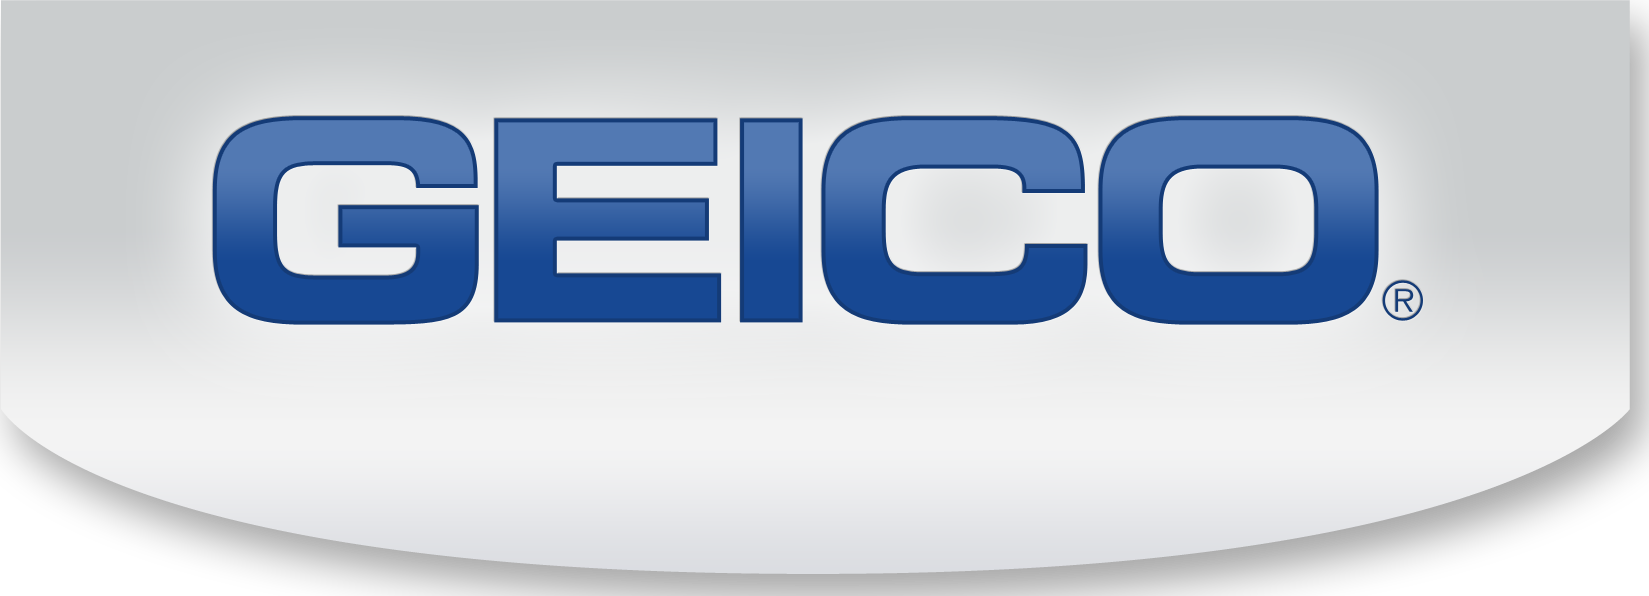 1649x596 > Geico Wallpapers